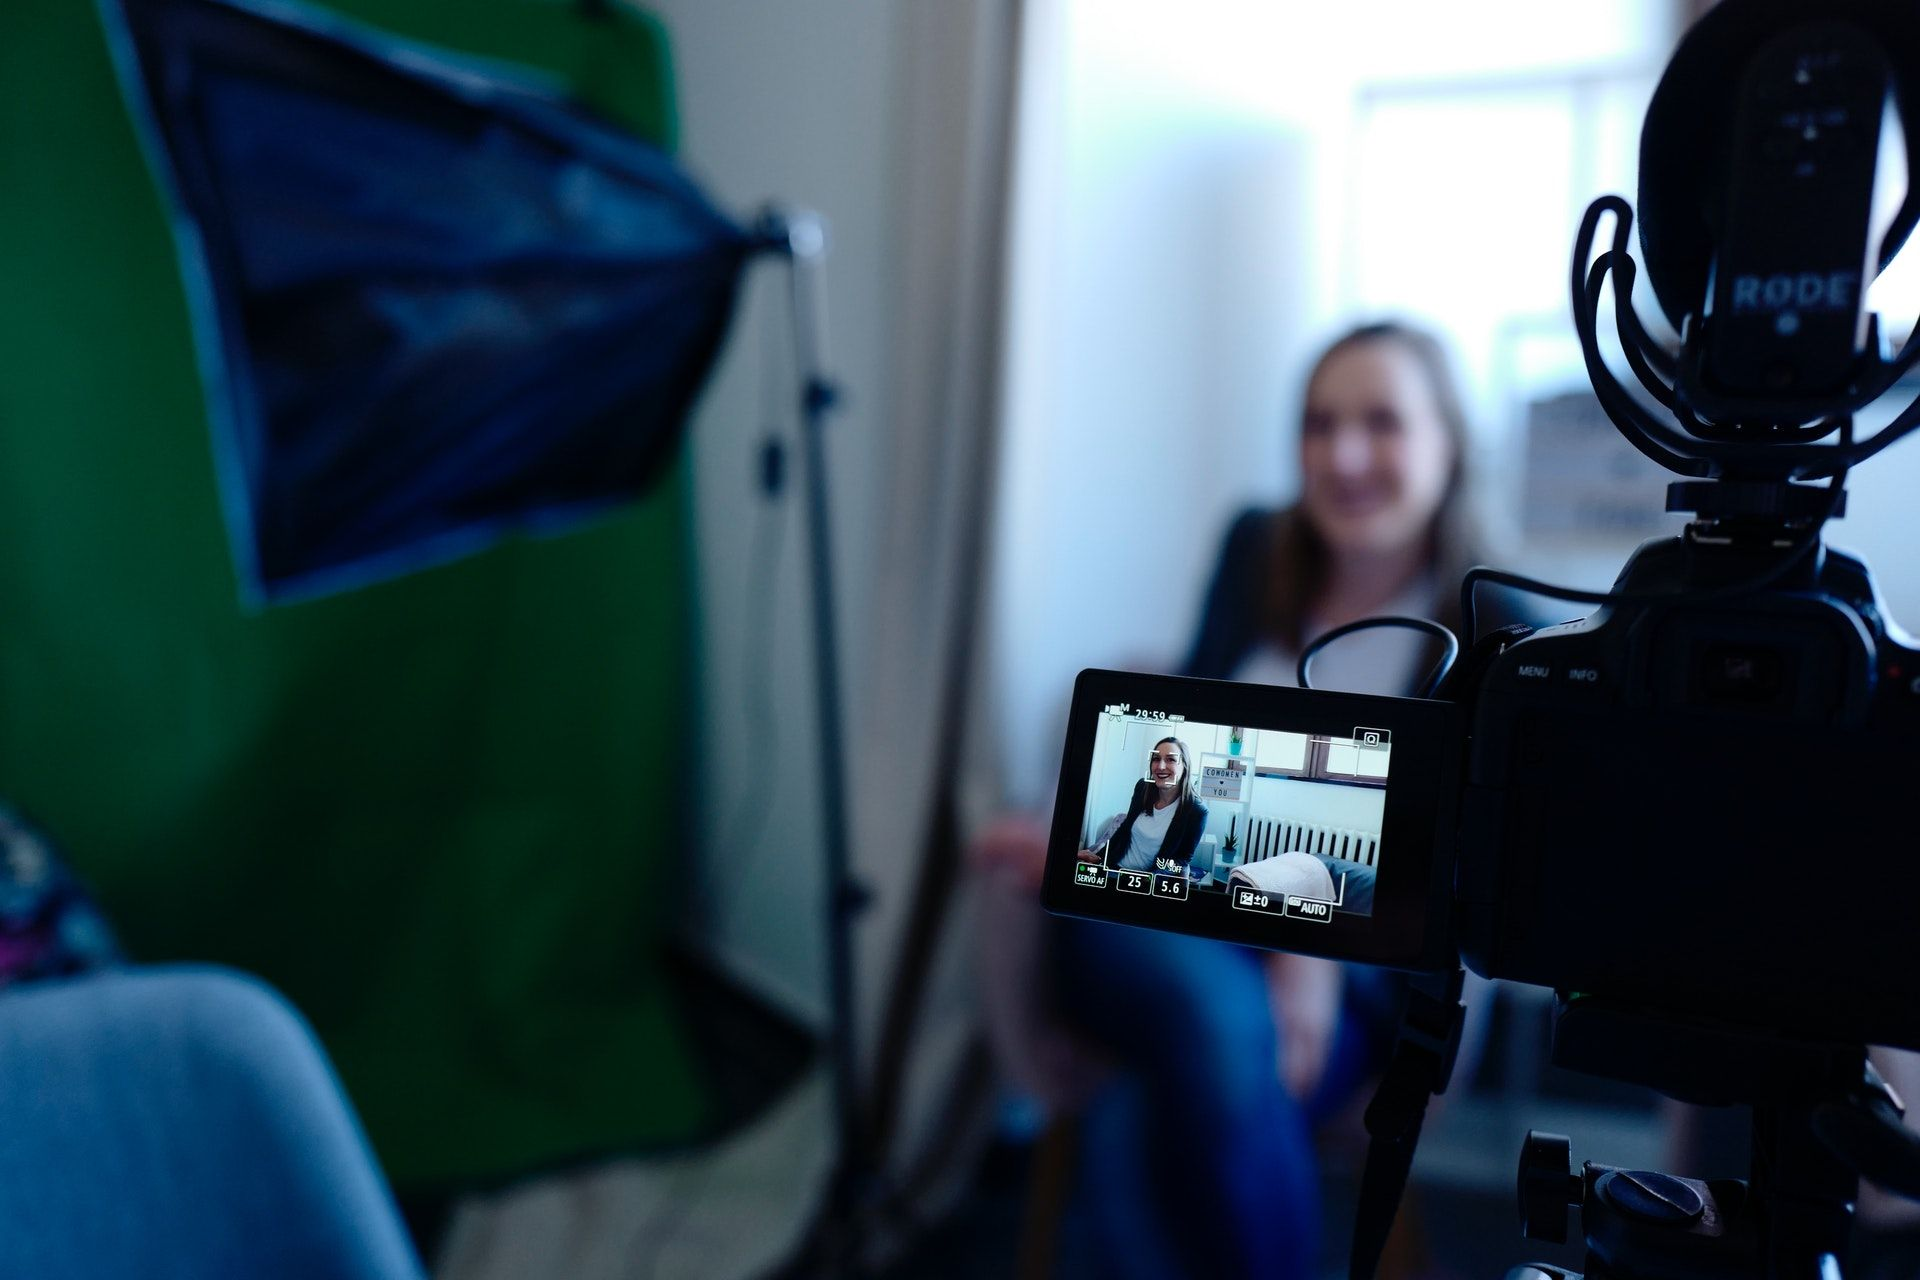 Interview Filming - Tips and Techniques